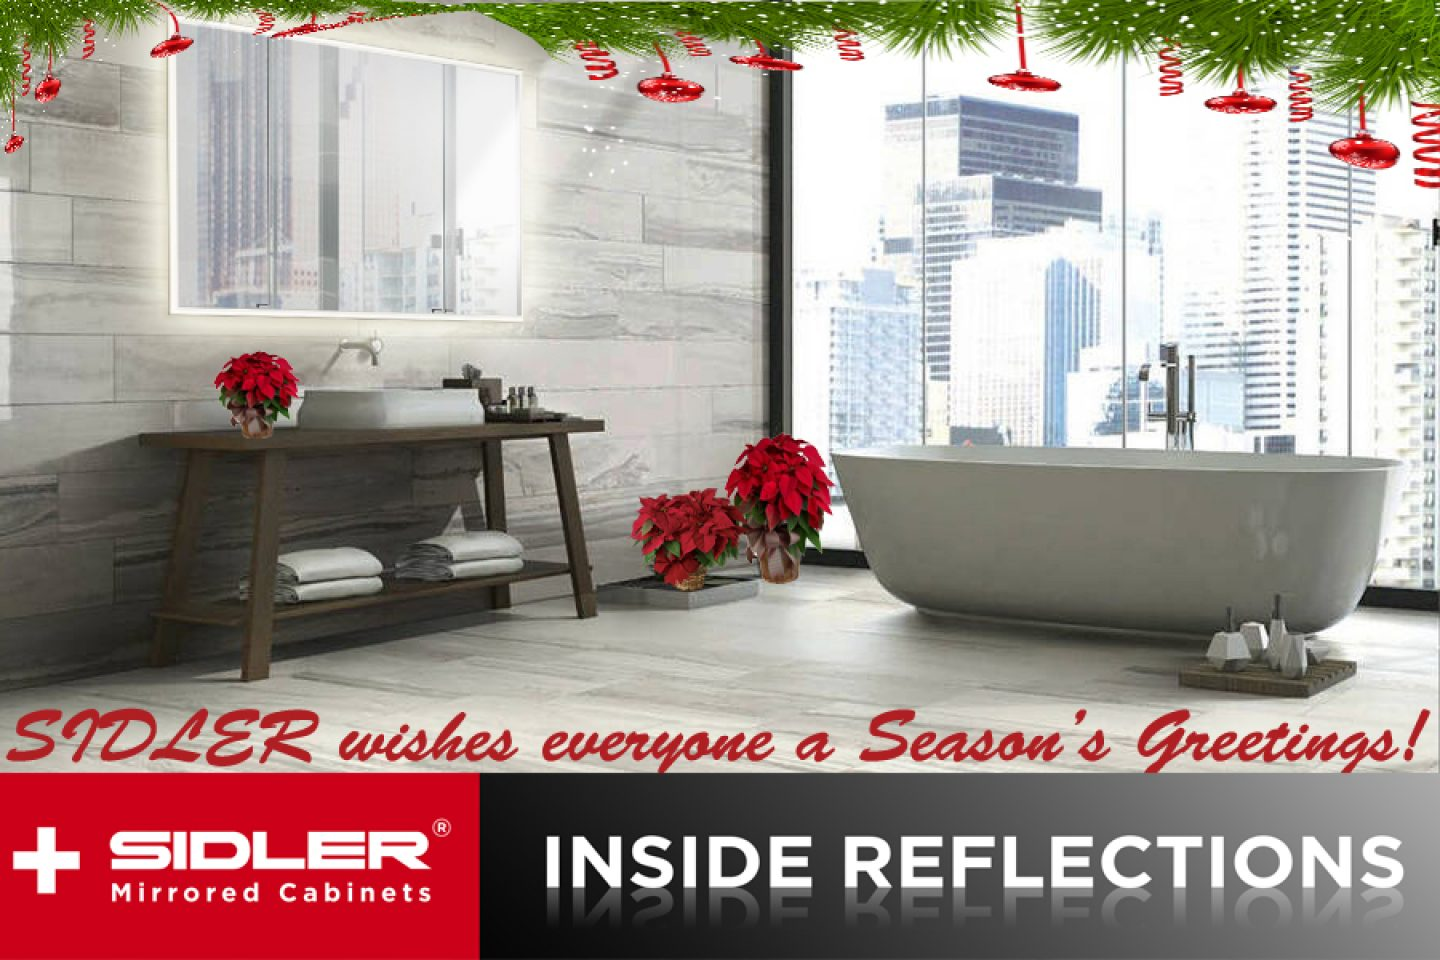 December 2020-SIDLER, INSIDE REFLECTIONS - Seasons Greetings-Bathroom Design Trends 2021